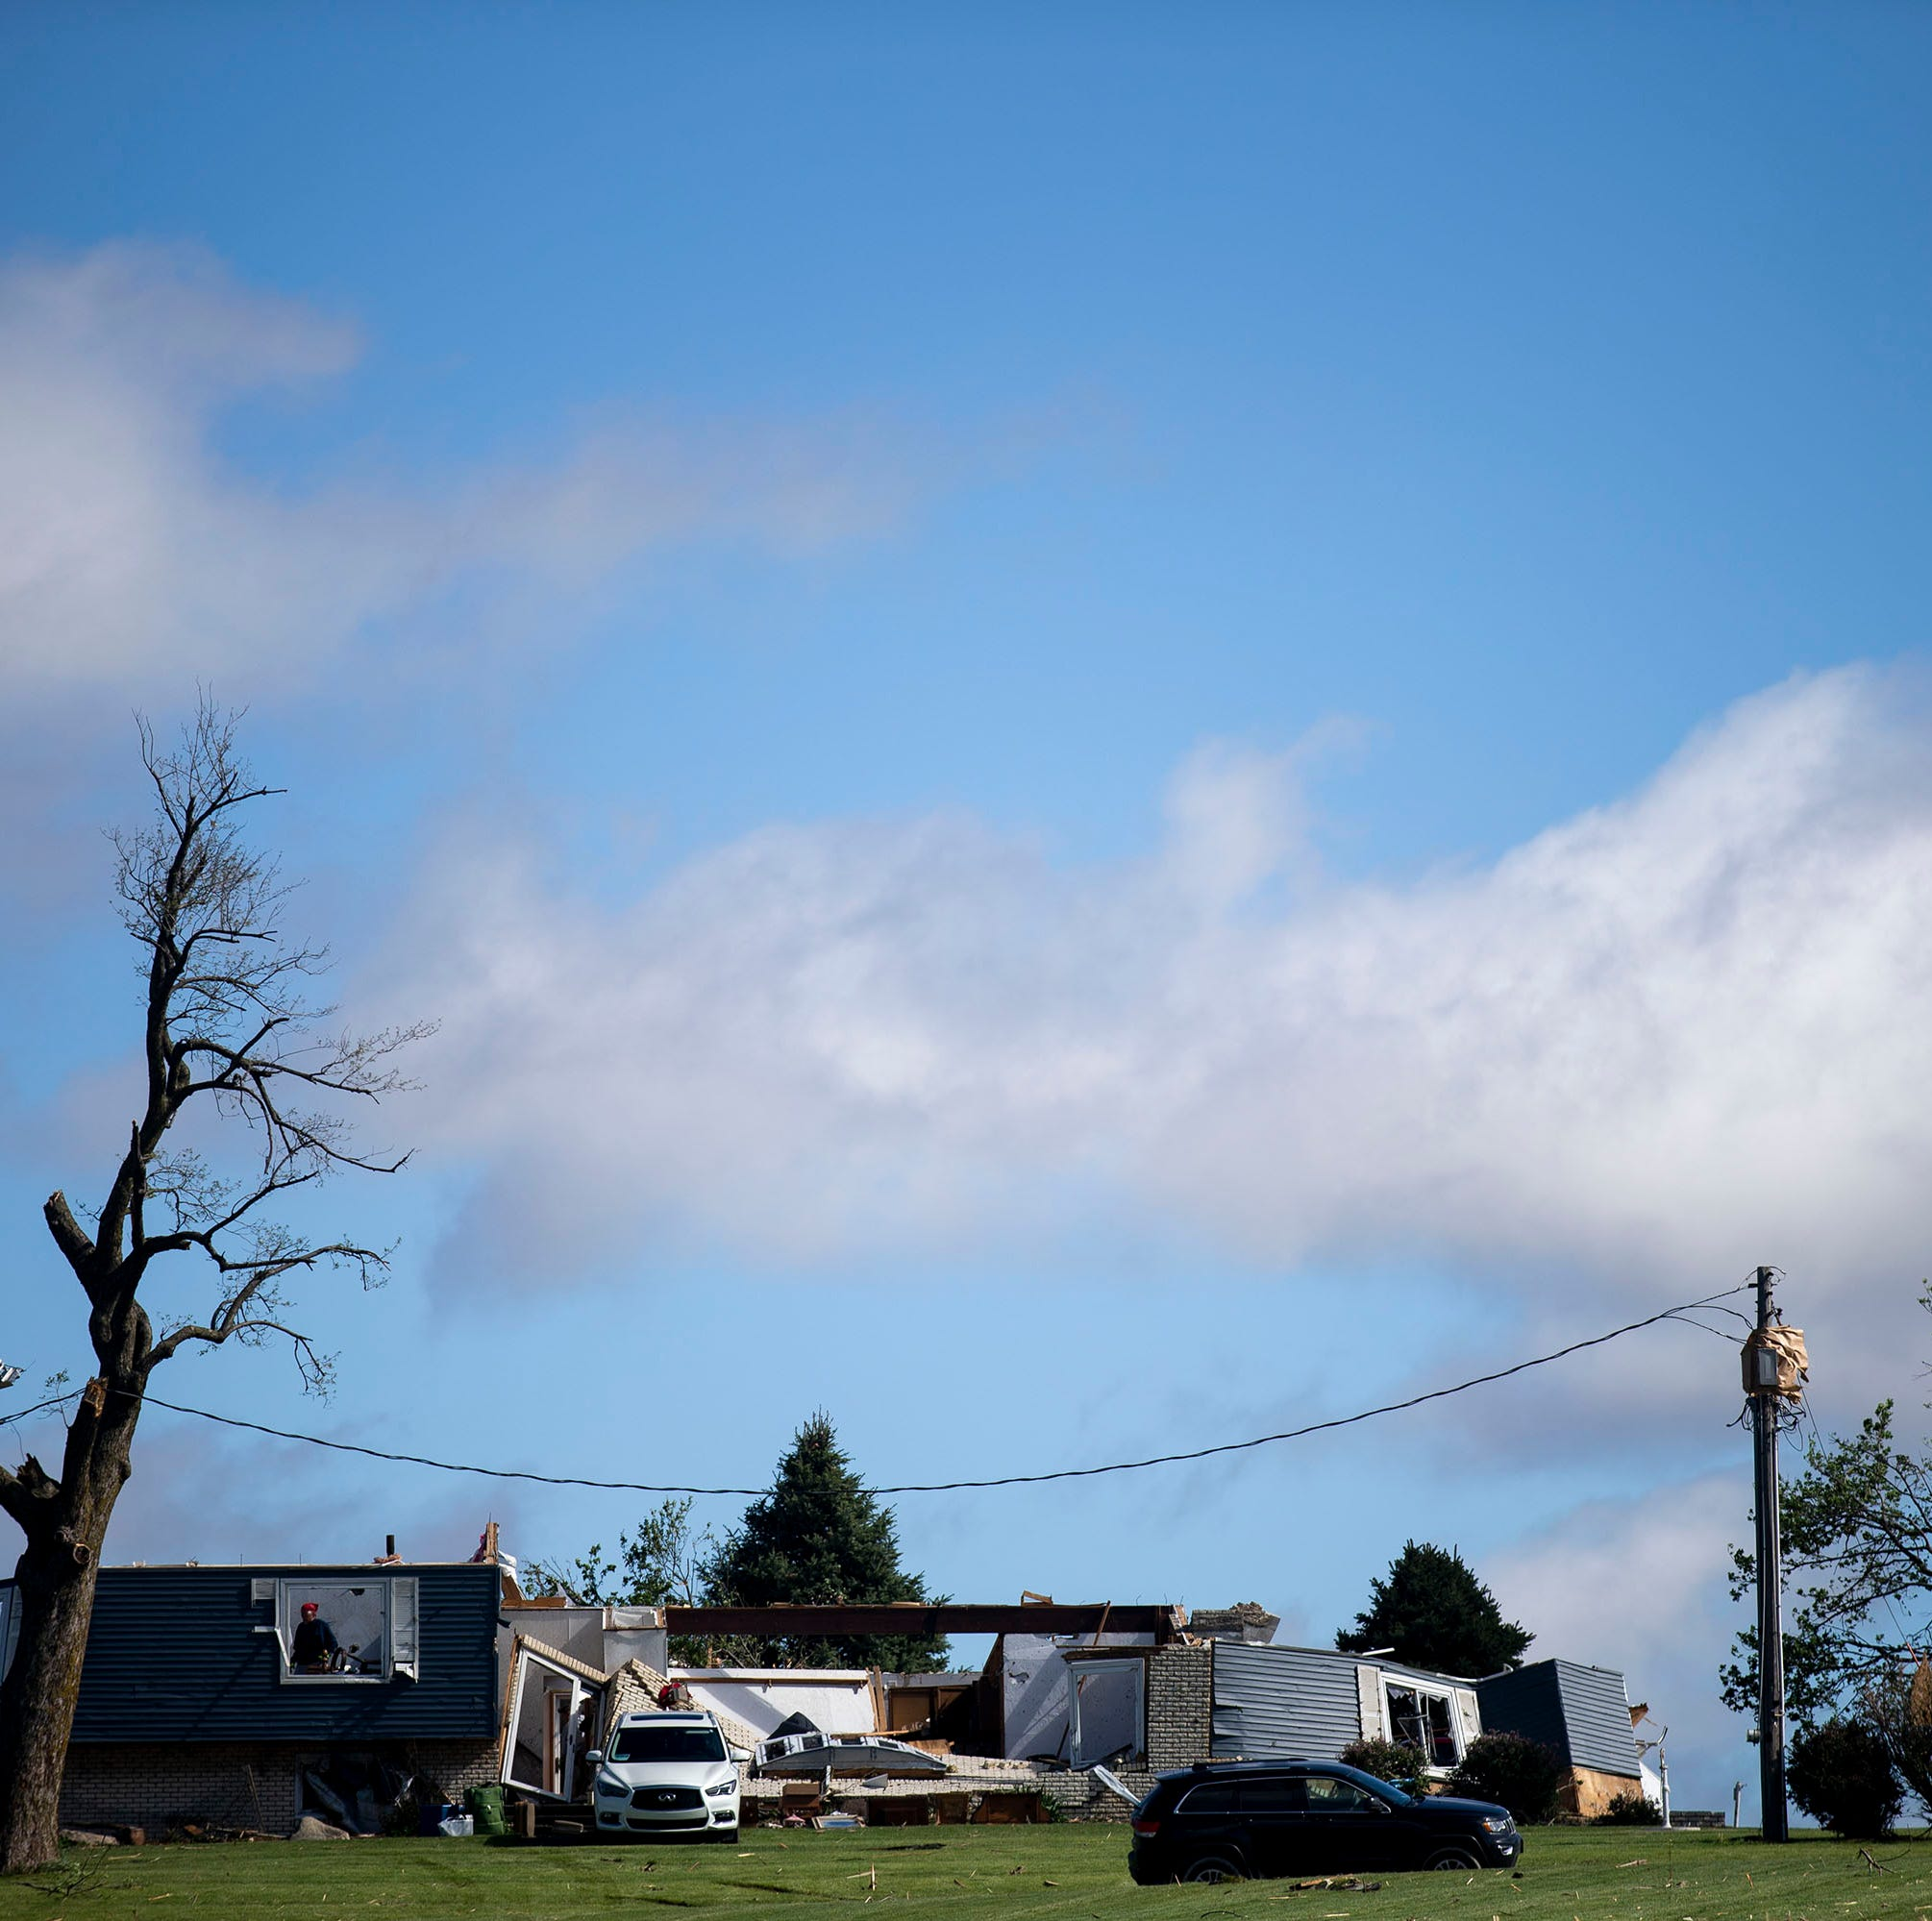 National Weather Service: EF2 tornado killed 1, injured another in Adair County